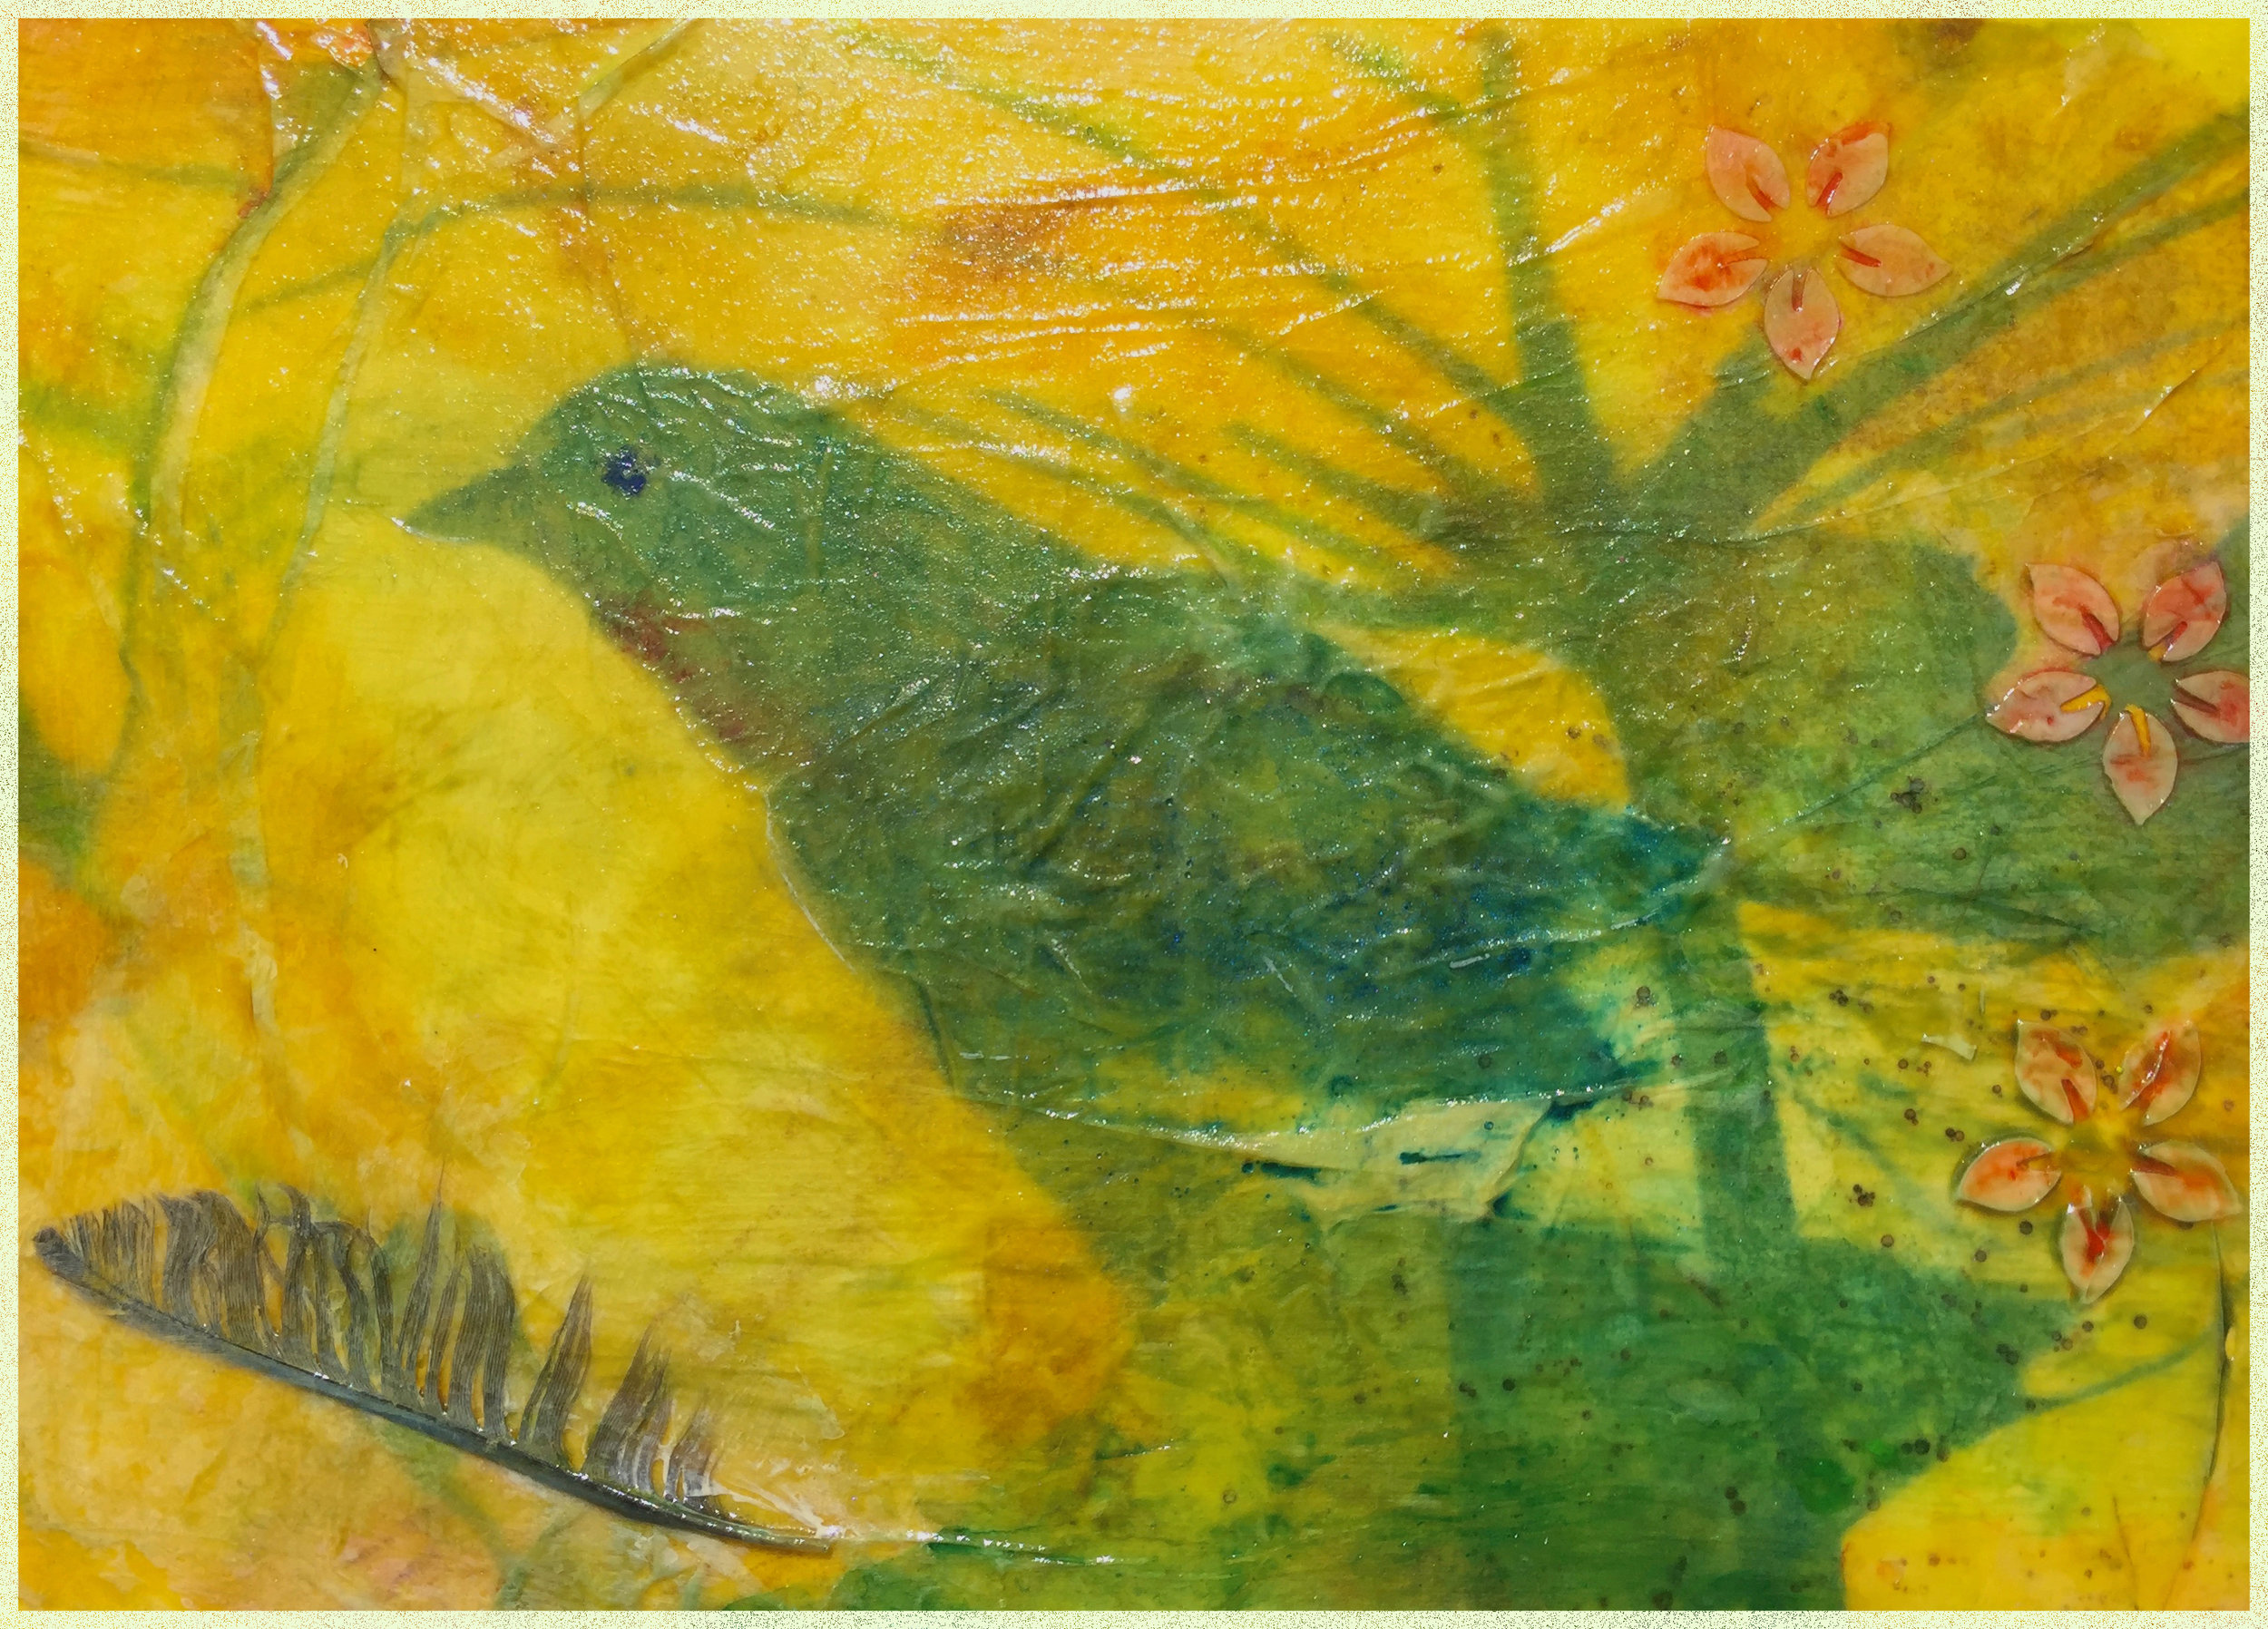 "This was a fun exercise. This is a 5x7 inch canvas panel that I was asked to ""make art on"" and return to the Sacramento Fine Arts Center to be part of a fundraiser next month. The ""bird"" is really just leaf shapes, which I had never noticed before. The leaf print is one I made in Africa and printed on rice paper using an intaglio process called ImagOn. I did some acrylic glazing before and after, added some texture and finished with some watercolor touches. This is definitely part of my  breaking out  series where I am trying things I've never tried before and busting through self-imposed boundaries... Stay tuned! And thanks for checking in."